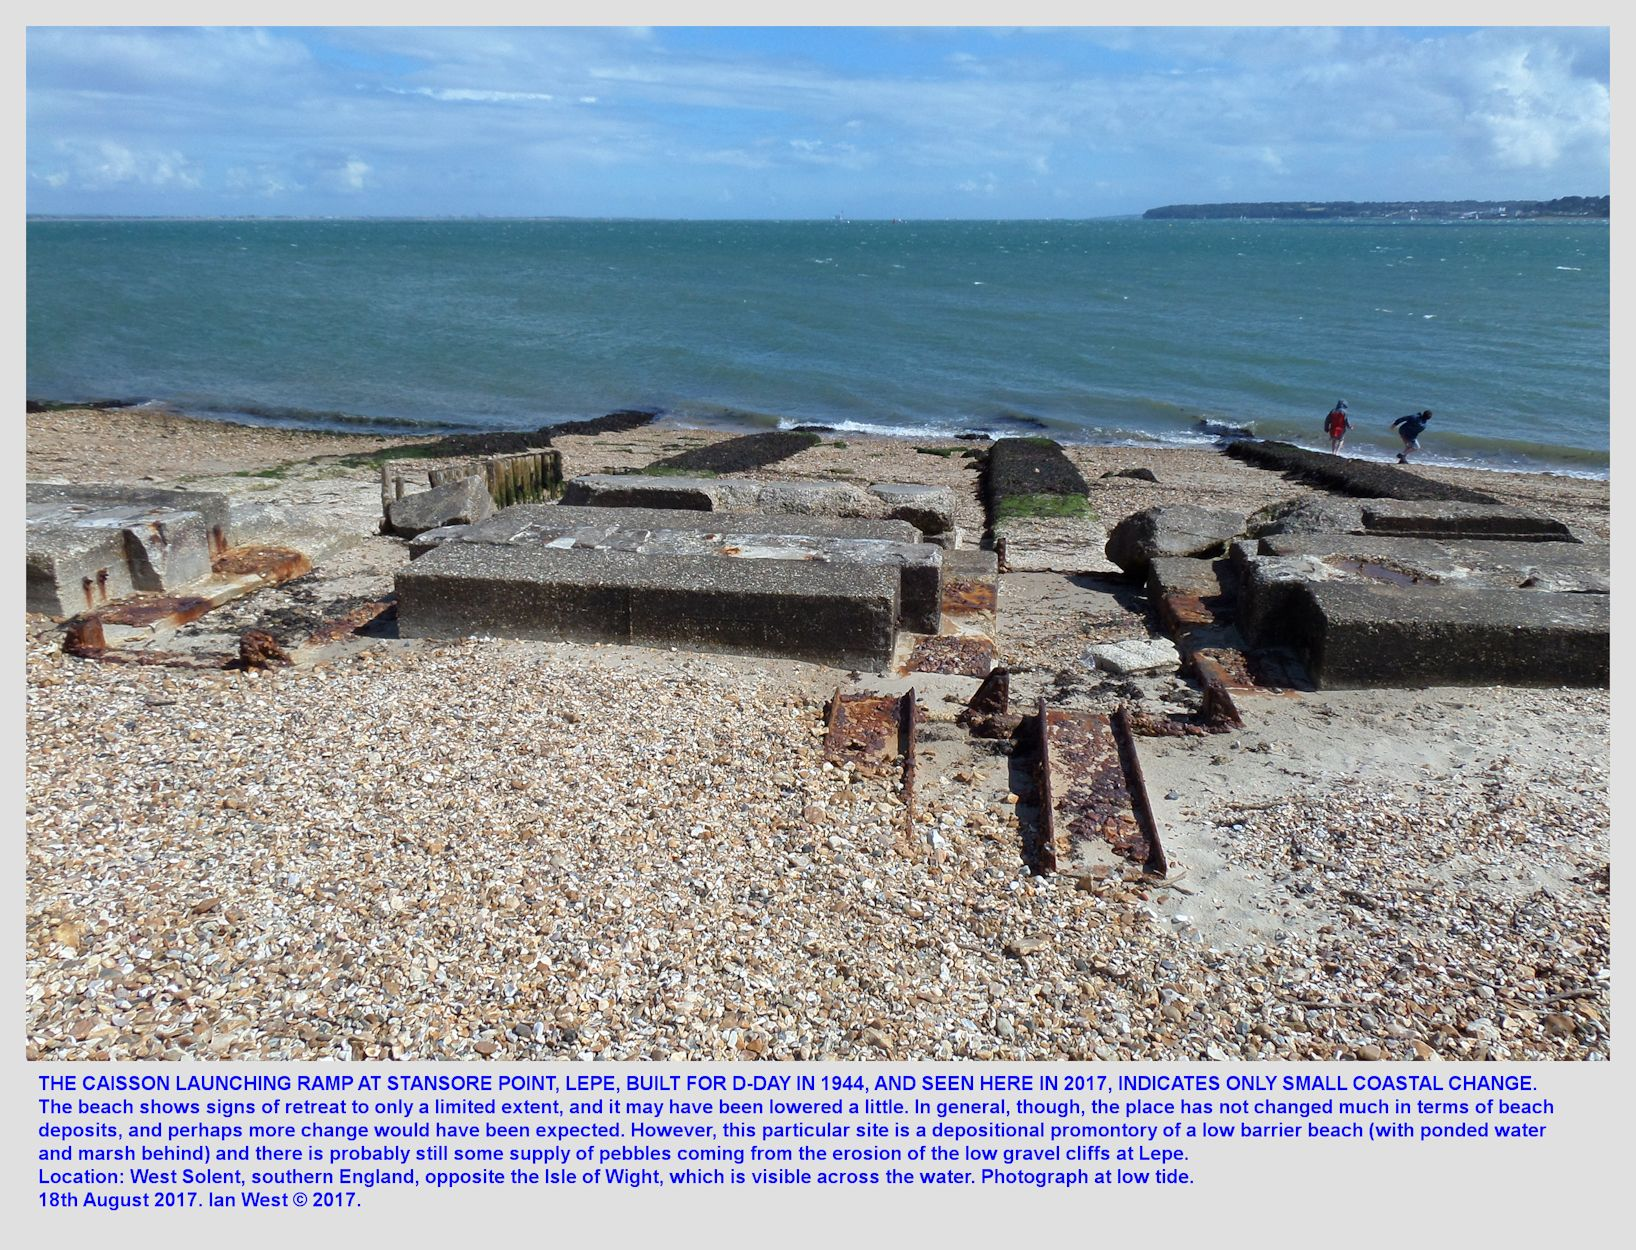 In the beach shingle - the remains of a steel and concrete ramp used for the launching of caissons which were constructed on the nearby beach for the D-Day Invasion, Stansore Point, Lepe, Hampshire, low tide, 18th August 2017